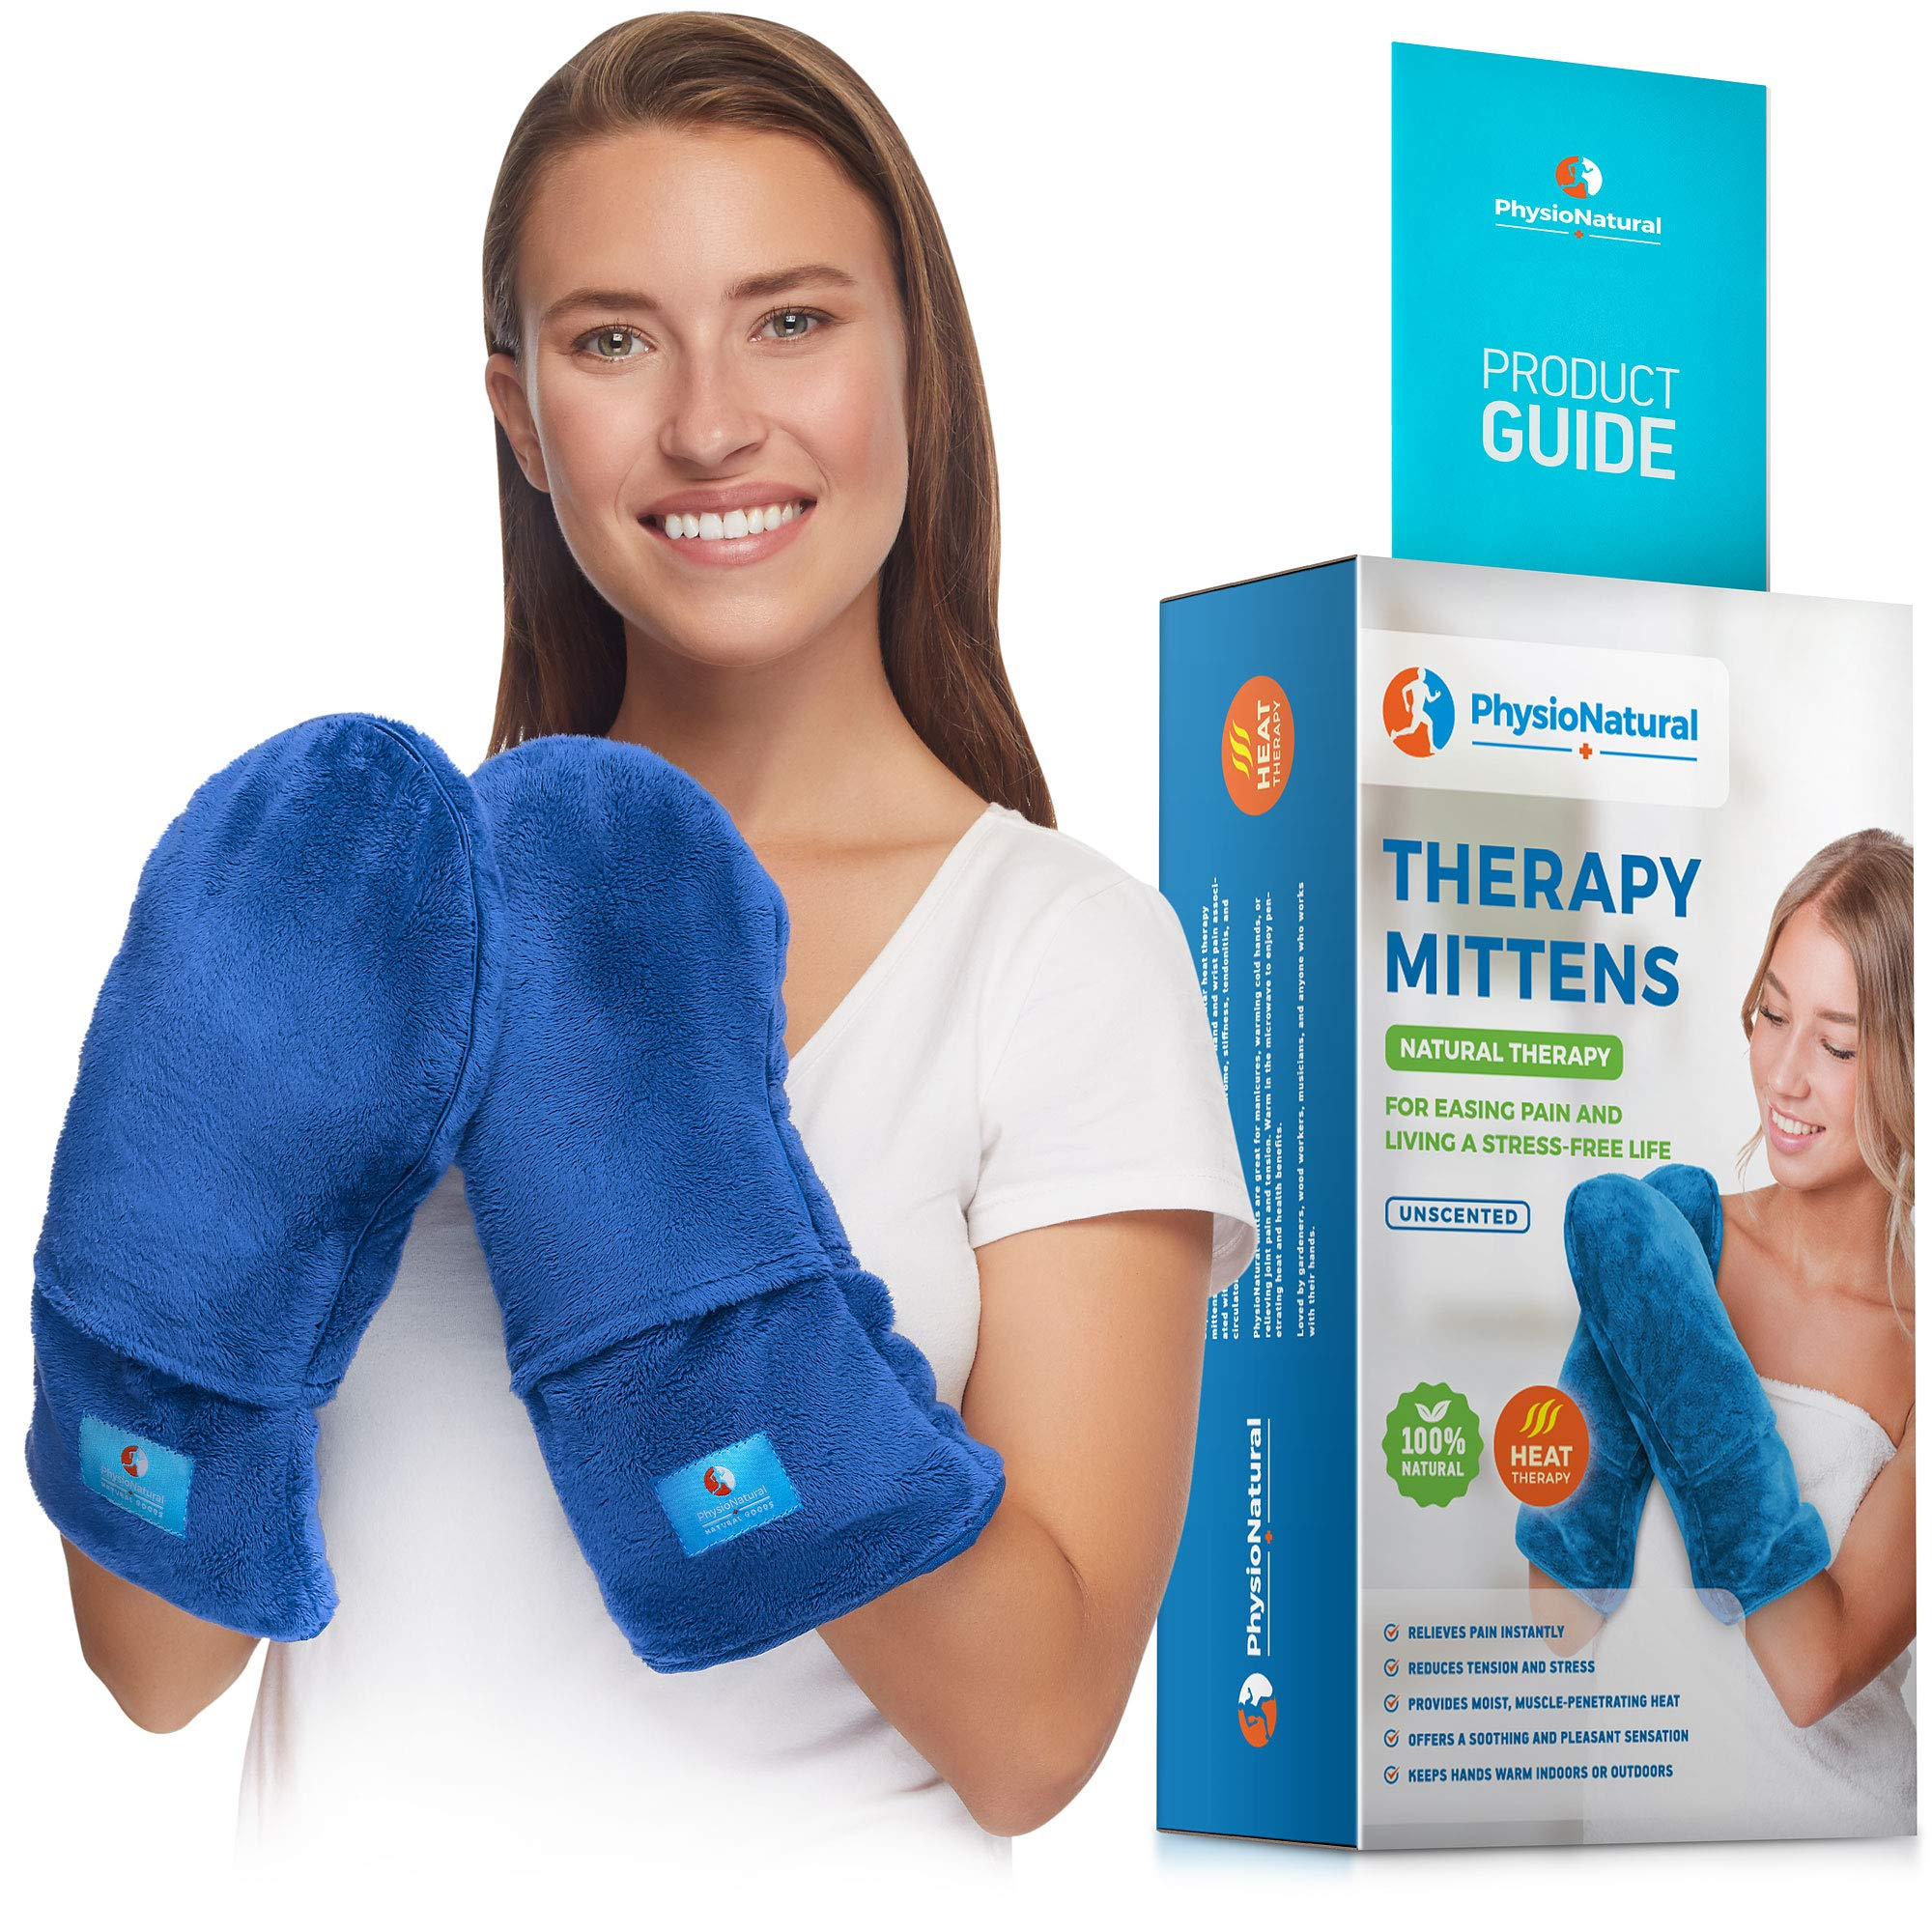 Microwavable Therapy Mittens with Flaxseed - Moist Heat Therapy Relief for Hands and Fingers in Cases of Stiff Joints, Trigger Finger, Inflammation, Raynaud's, Carpal Tunnel - Natural Unscented Gloves by PhysioNatural